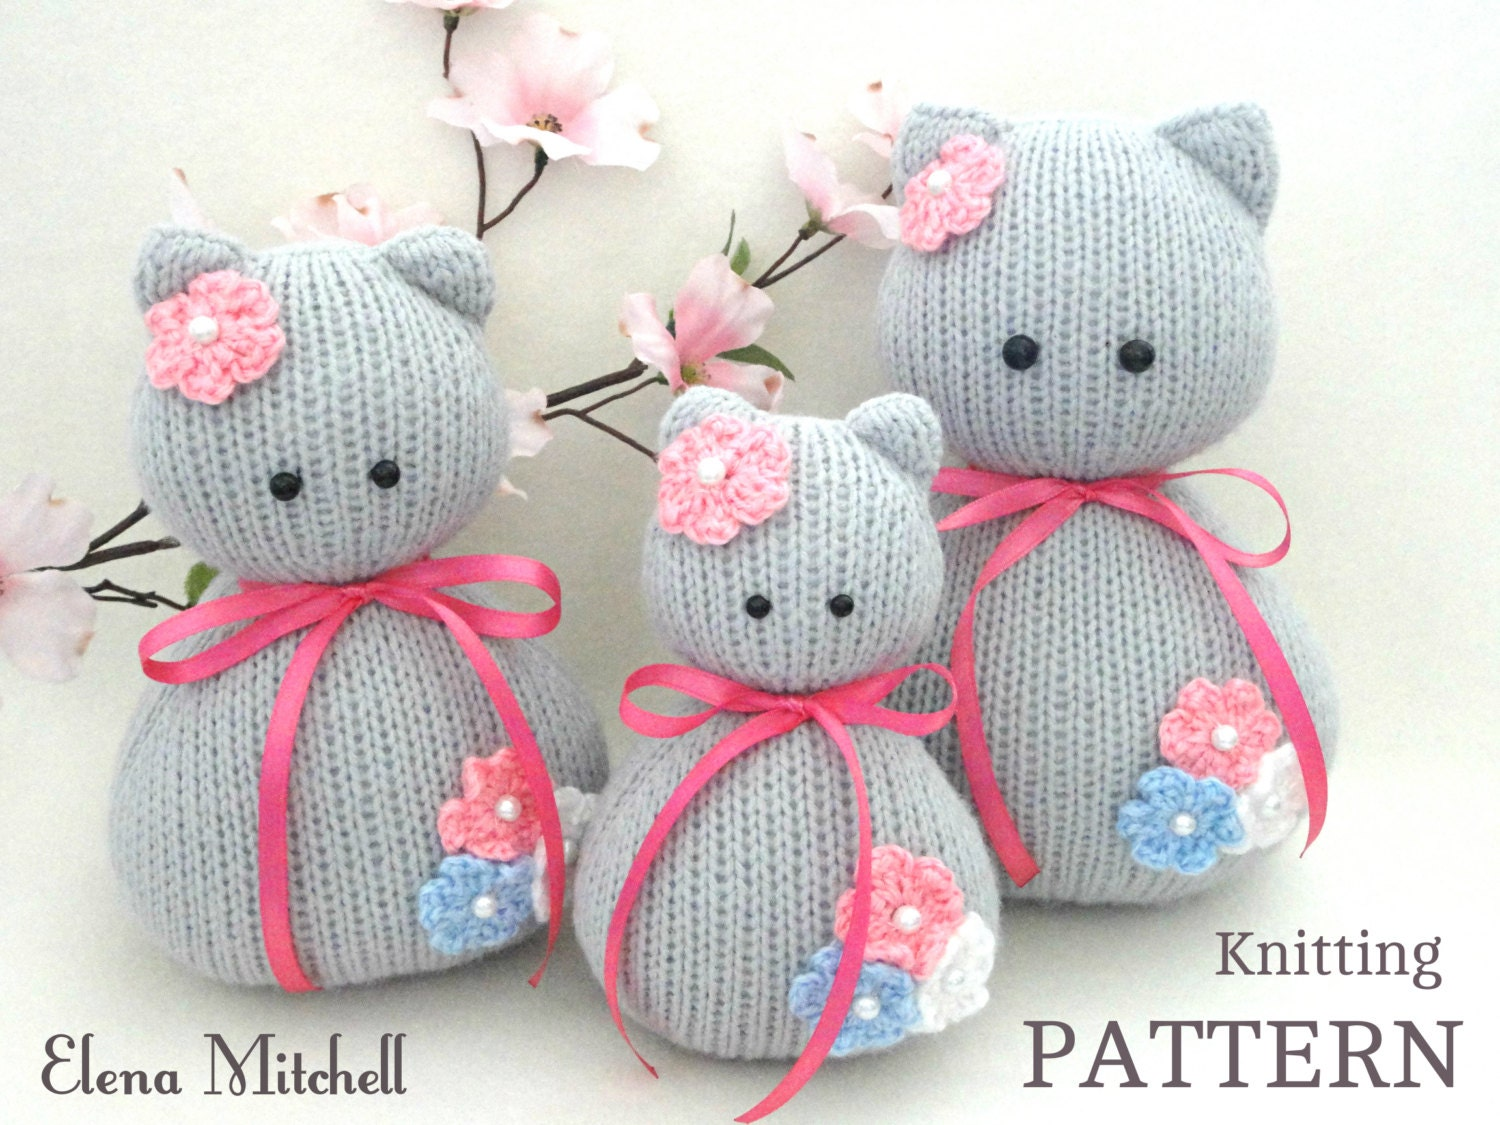 Knitting PATTERN Animal Knit Pattern Cat Animal Patterns Children ...